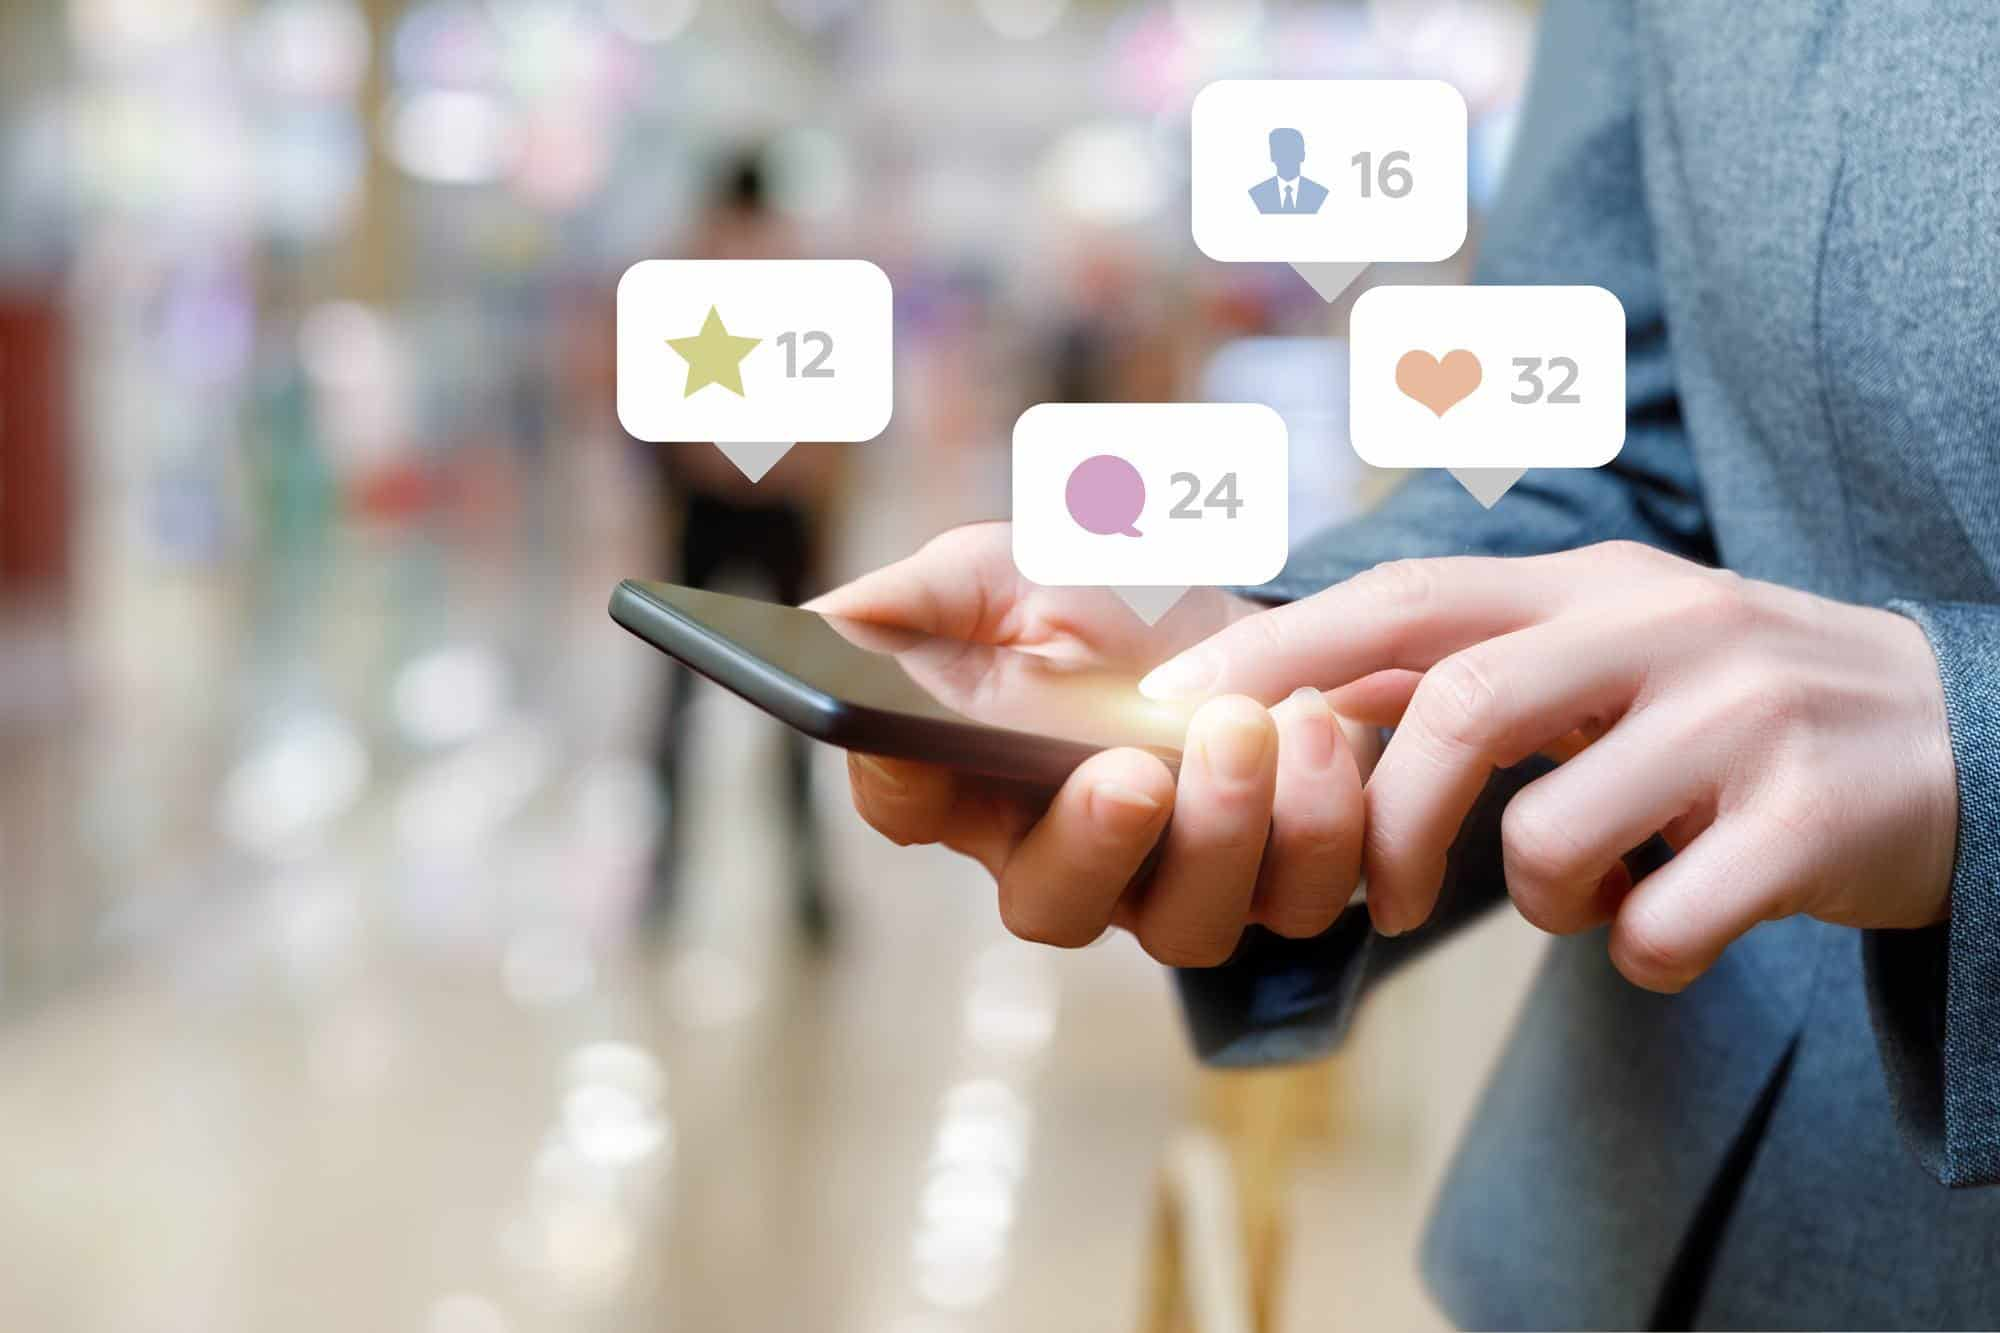 10+ Mobile App Marketing Tips That'll Help Increase App Downloads